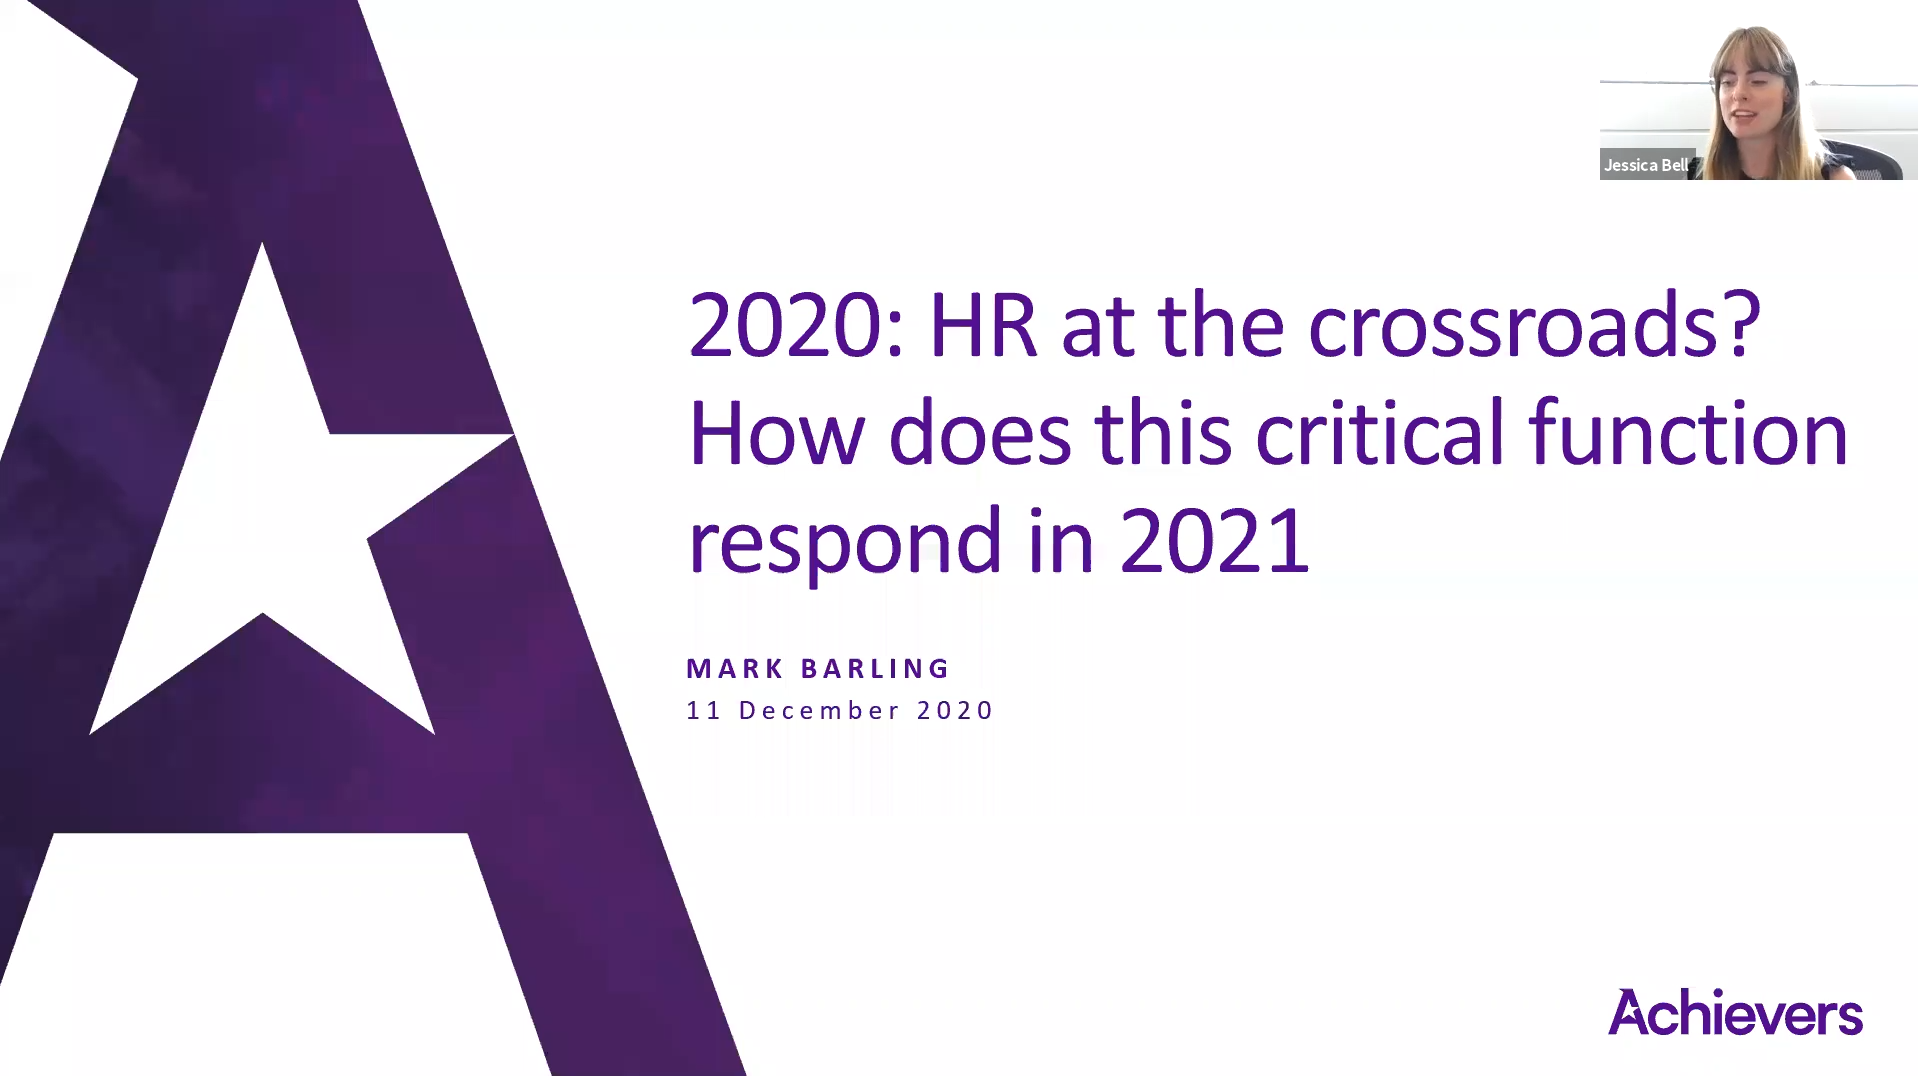 2020: HR at the crossroads? How does this critical function respond in 2021